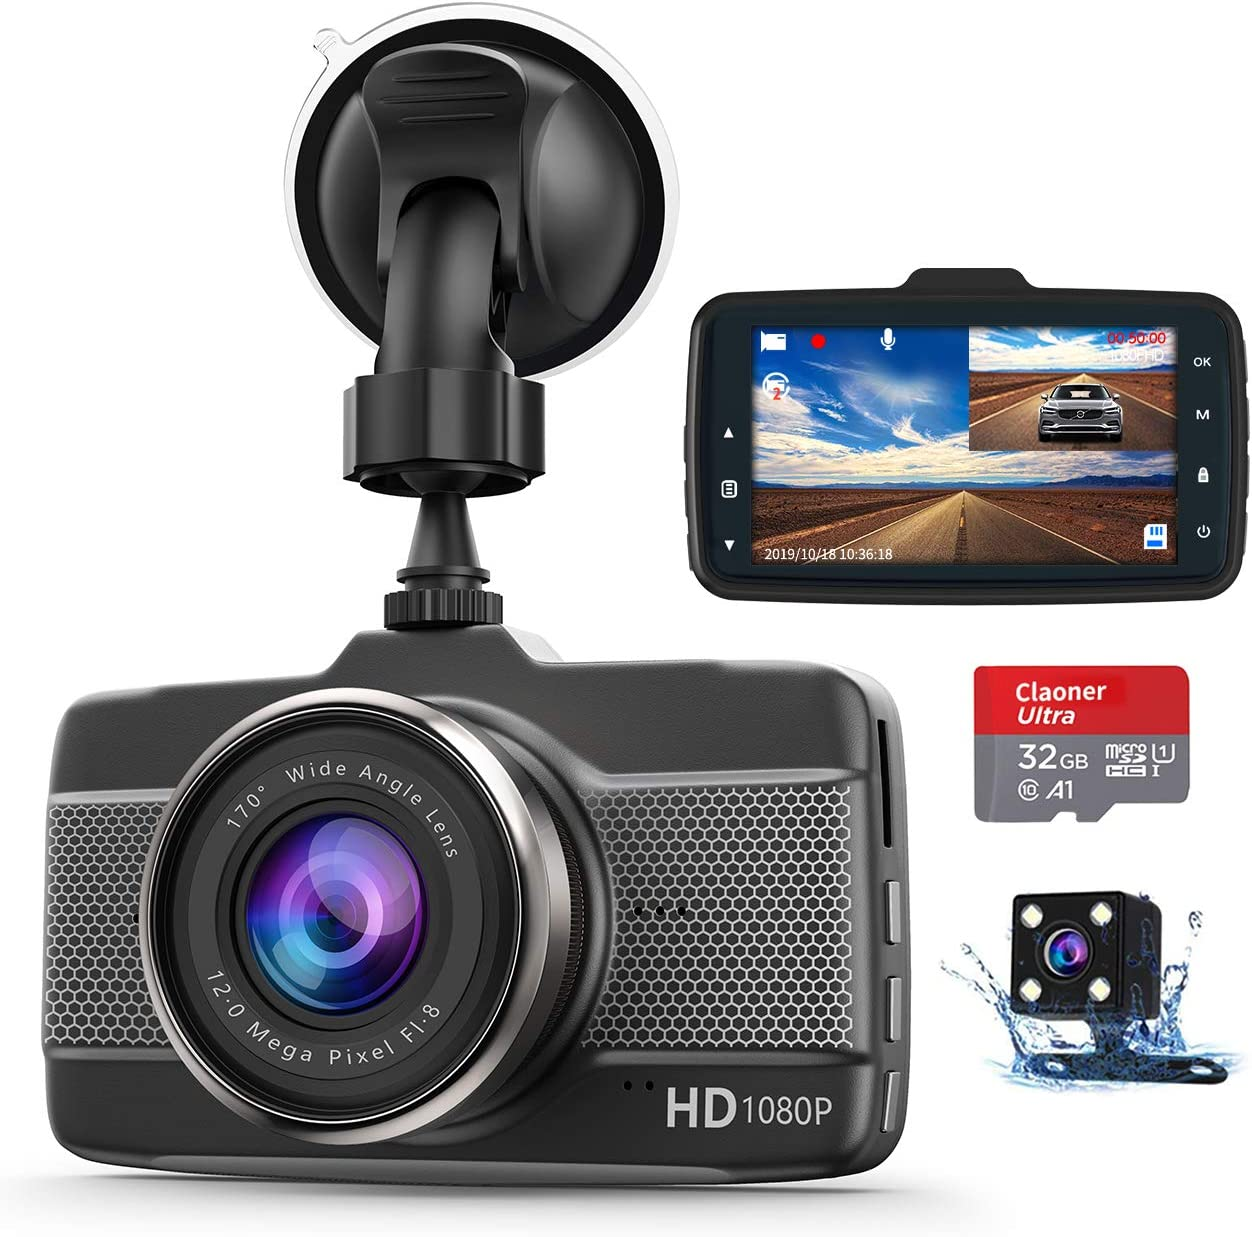 Dash Cam Front and Rear with SD Card (32G) Claoner FHD 1080P Backup Car Camera with Night Vision, 3 Inch IPS Screen, 170° Wide Angle, Loop Recording, G-Sensor, Motion Detection, Parking Monitor